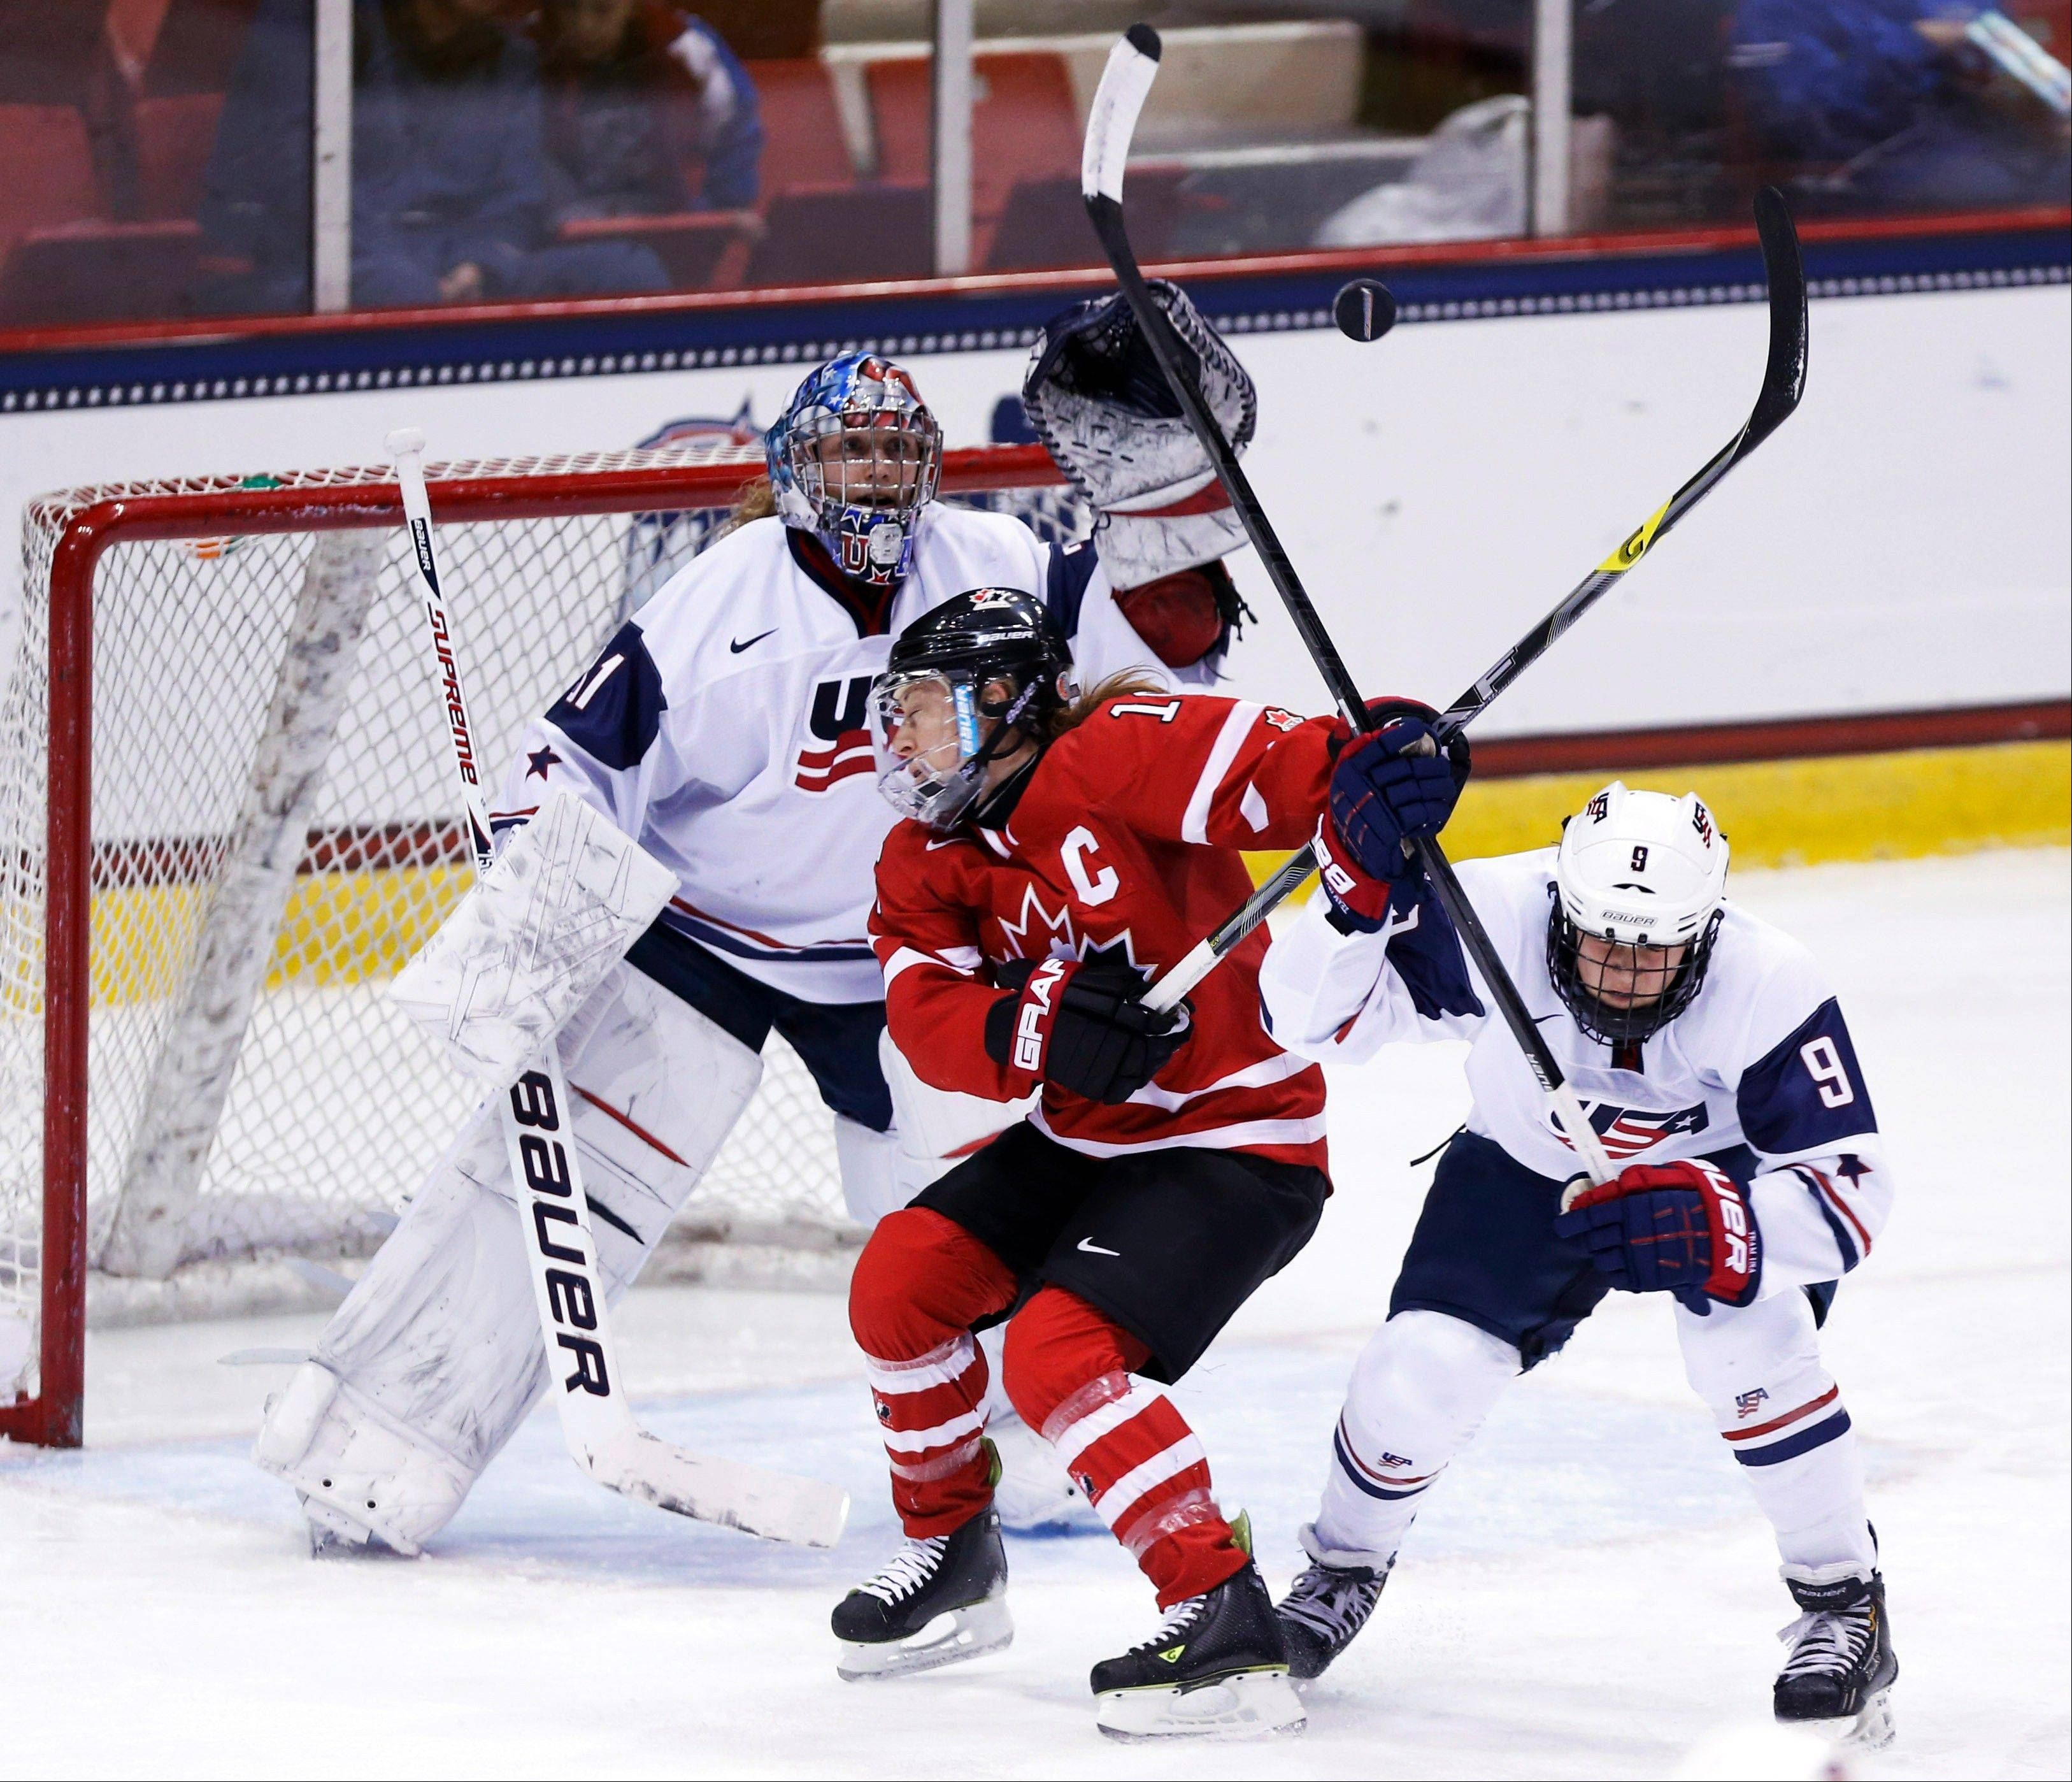 United States goalie Jessie Vetter, left, makes a save in front of teammate Megan Bozek (9) and Canada's Jayna Hefford in a Four Nations Cup women's hockey game last November. The U.S. team, with Buffalo Grove native Bozek, opens its Olympic play on Saturday.